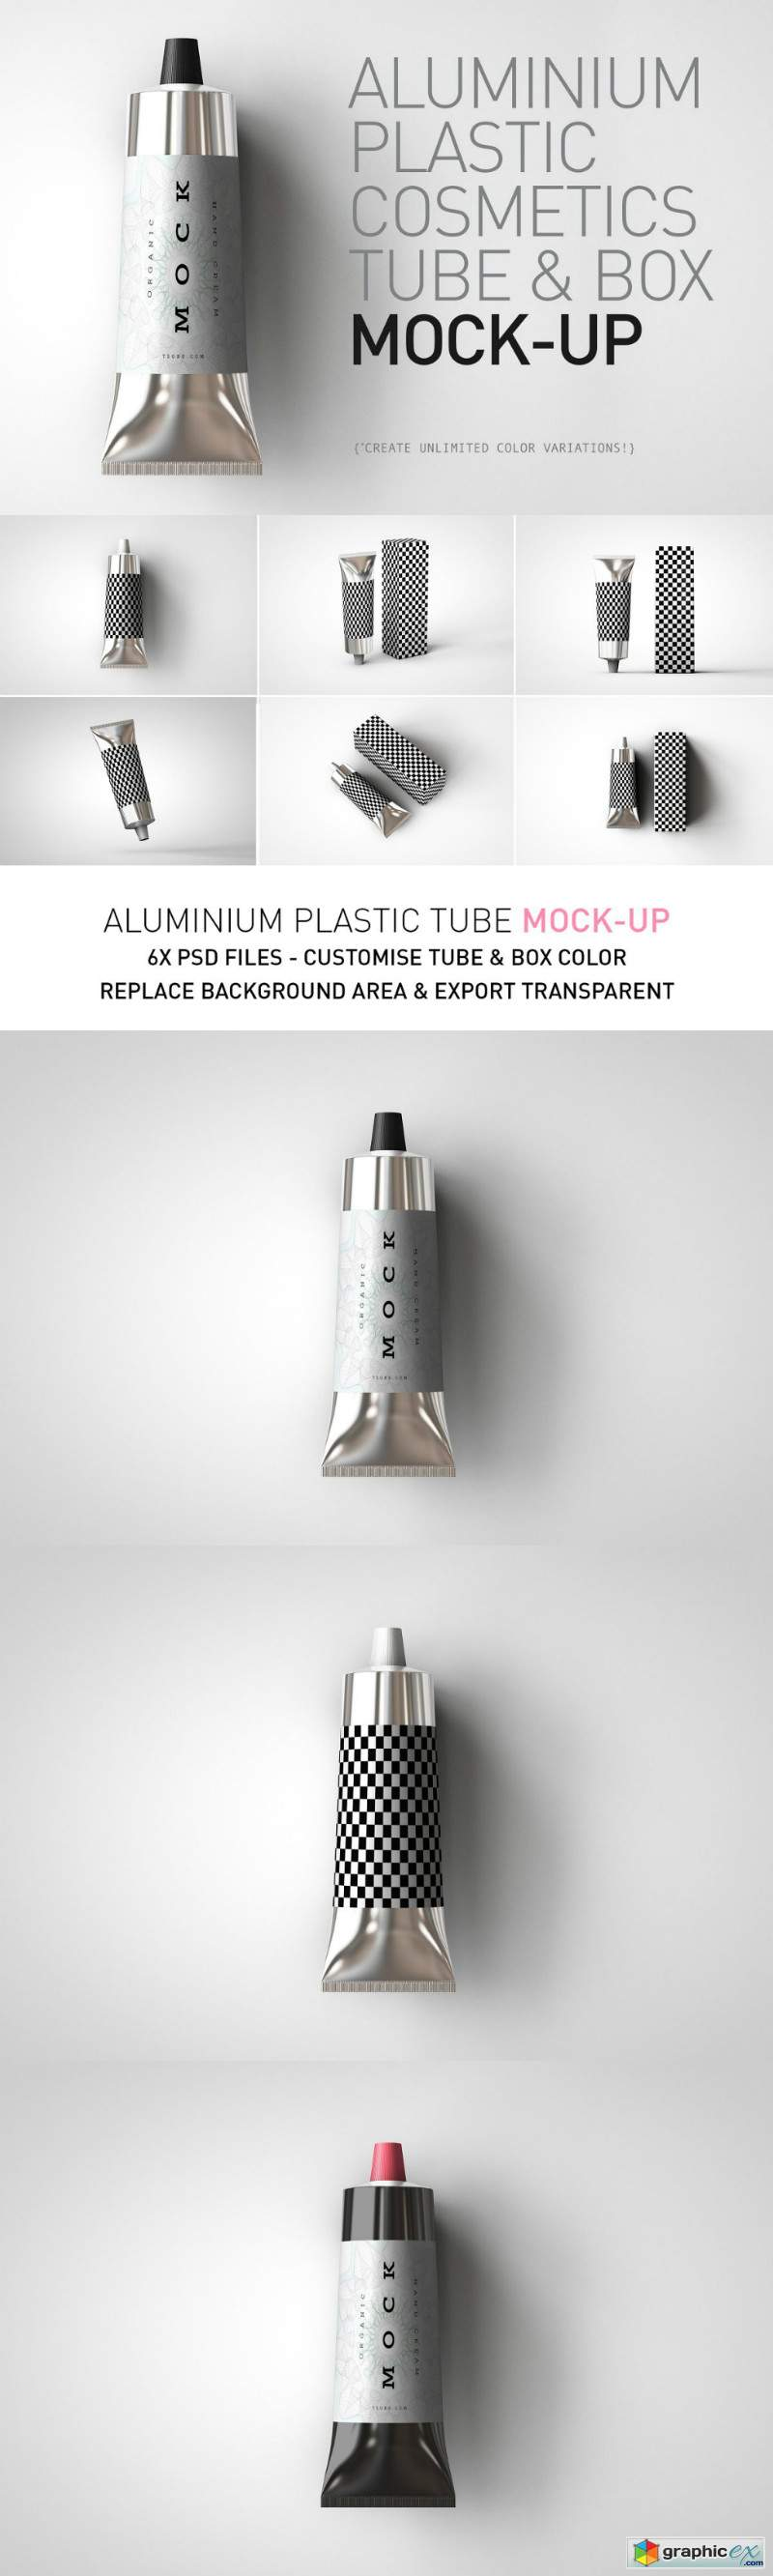 Aluminium Plastic Tube Mock-Up